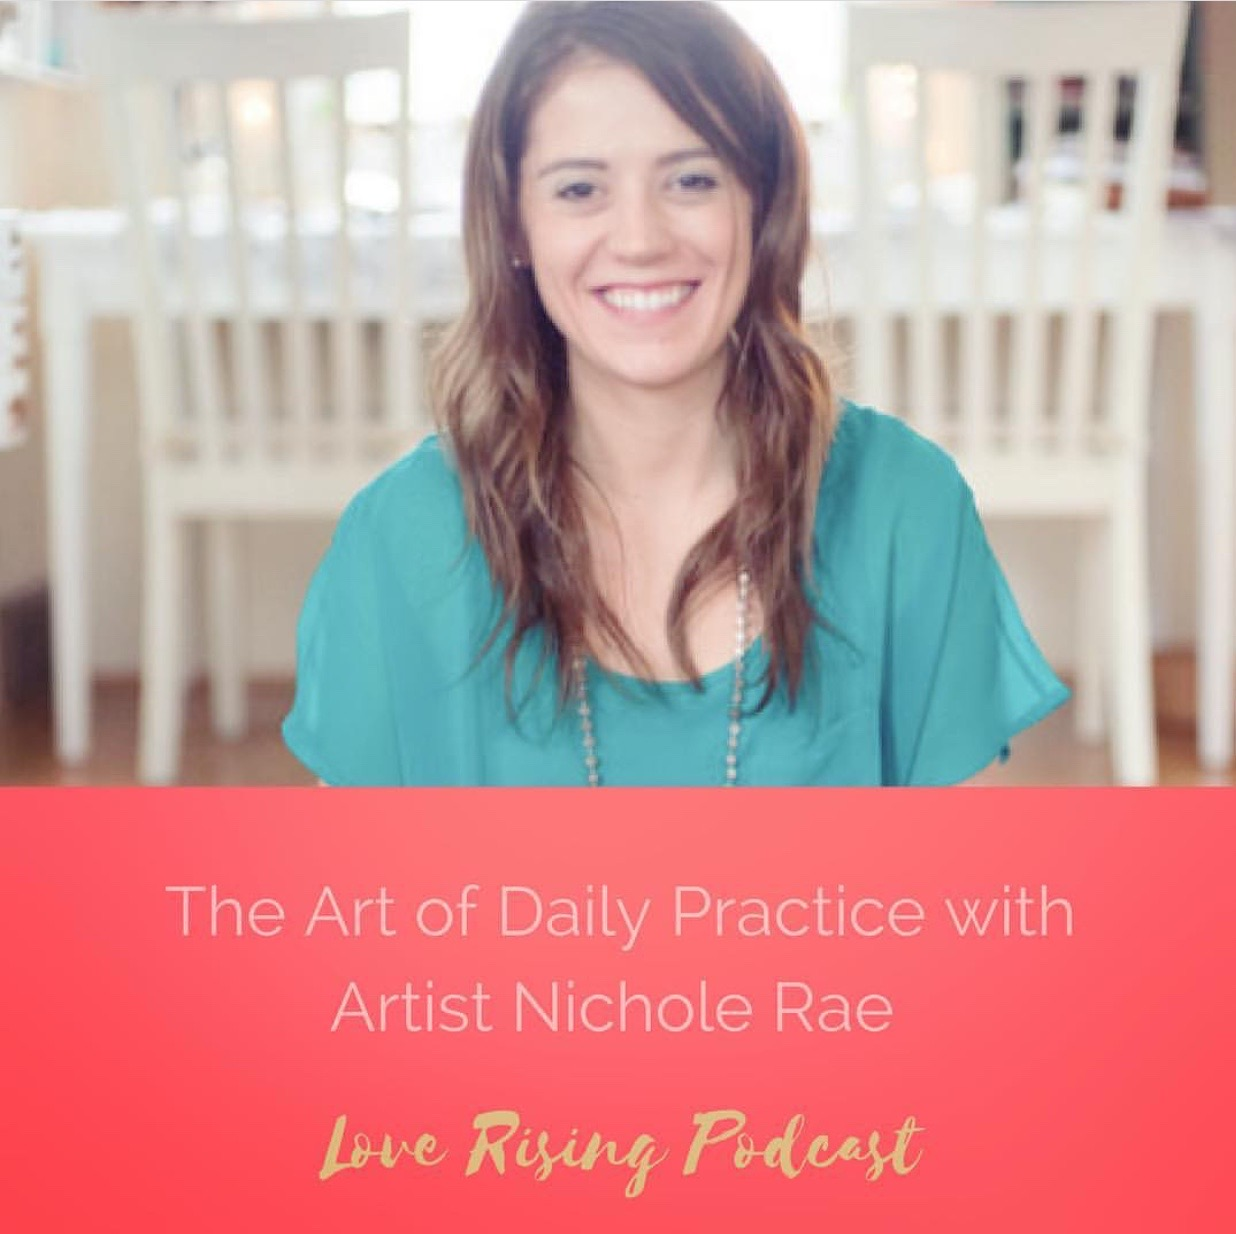 THE ART OF DAIL Y PRACTICE - FEATURED GUEST ON THE LOVE RISING PODCAST